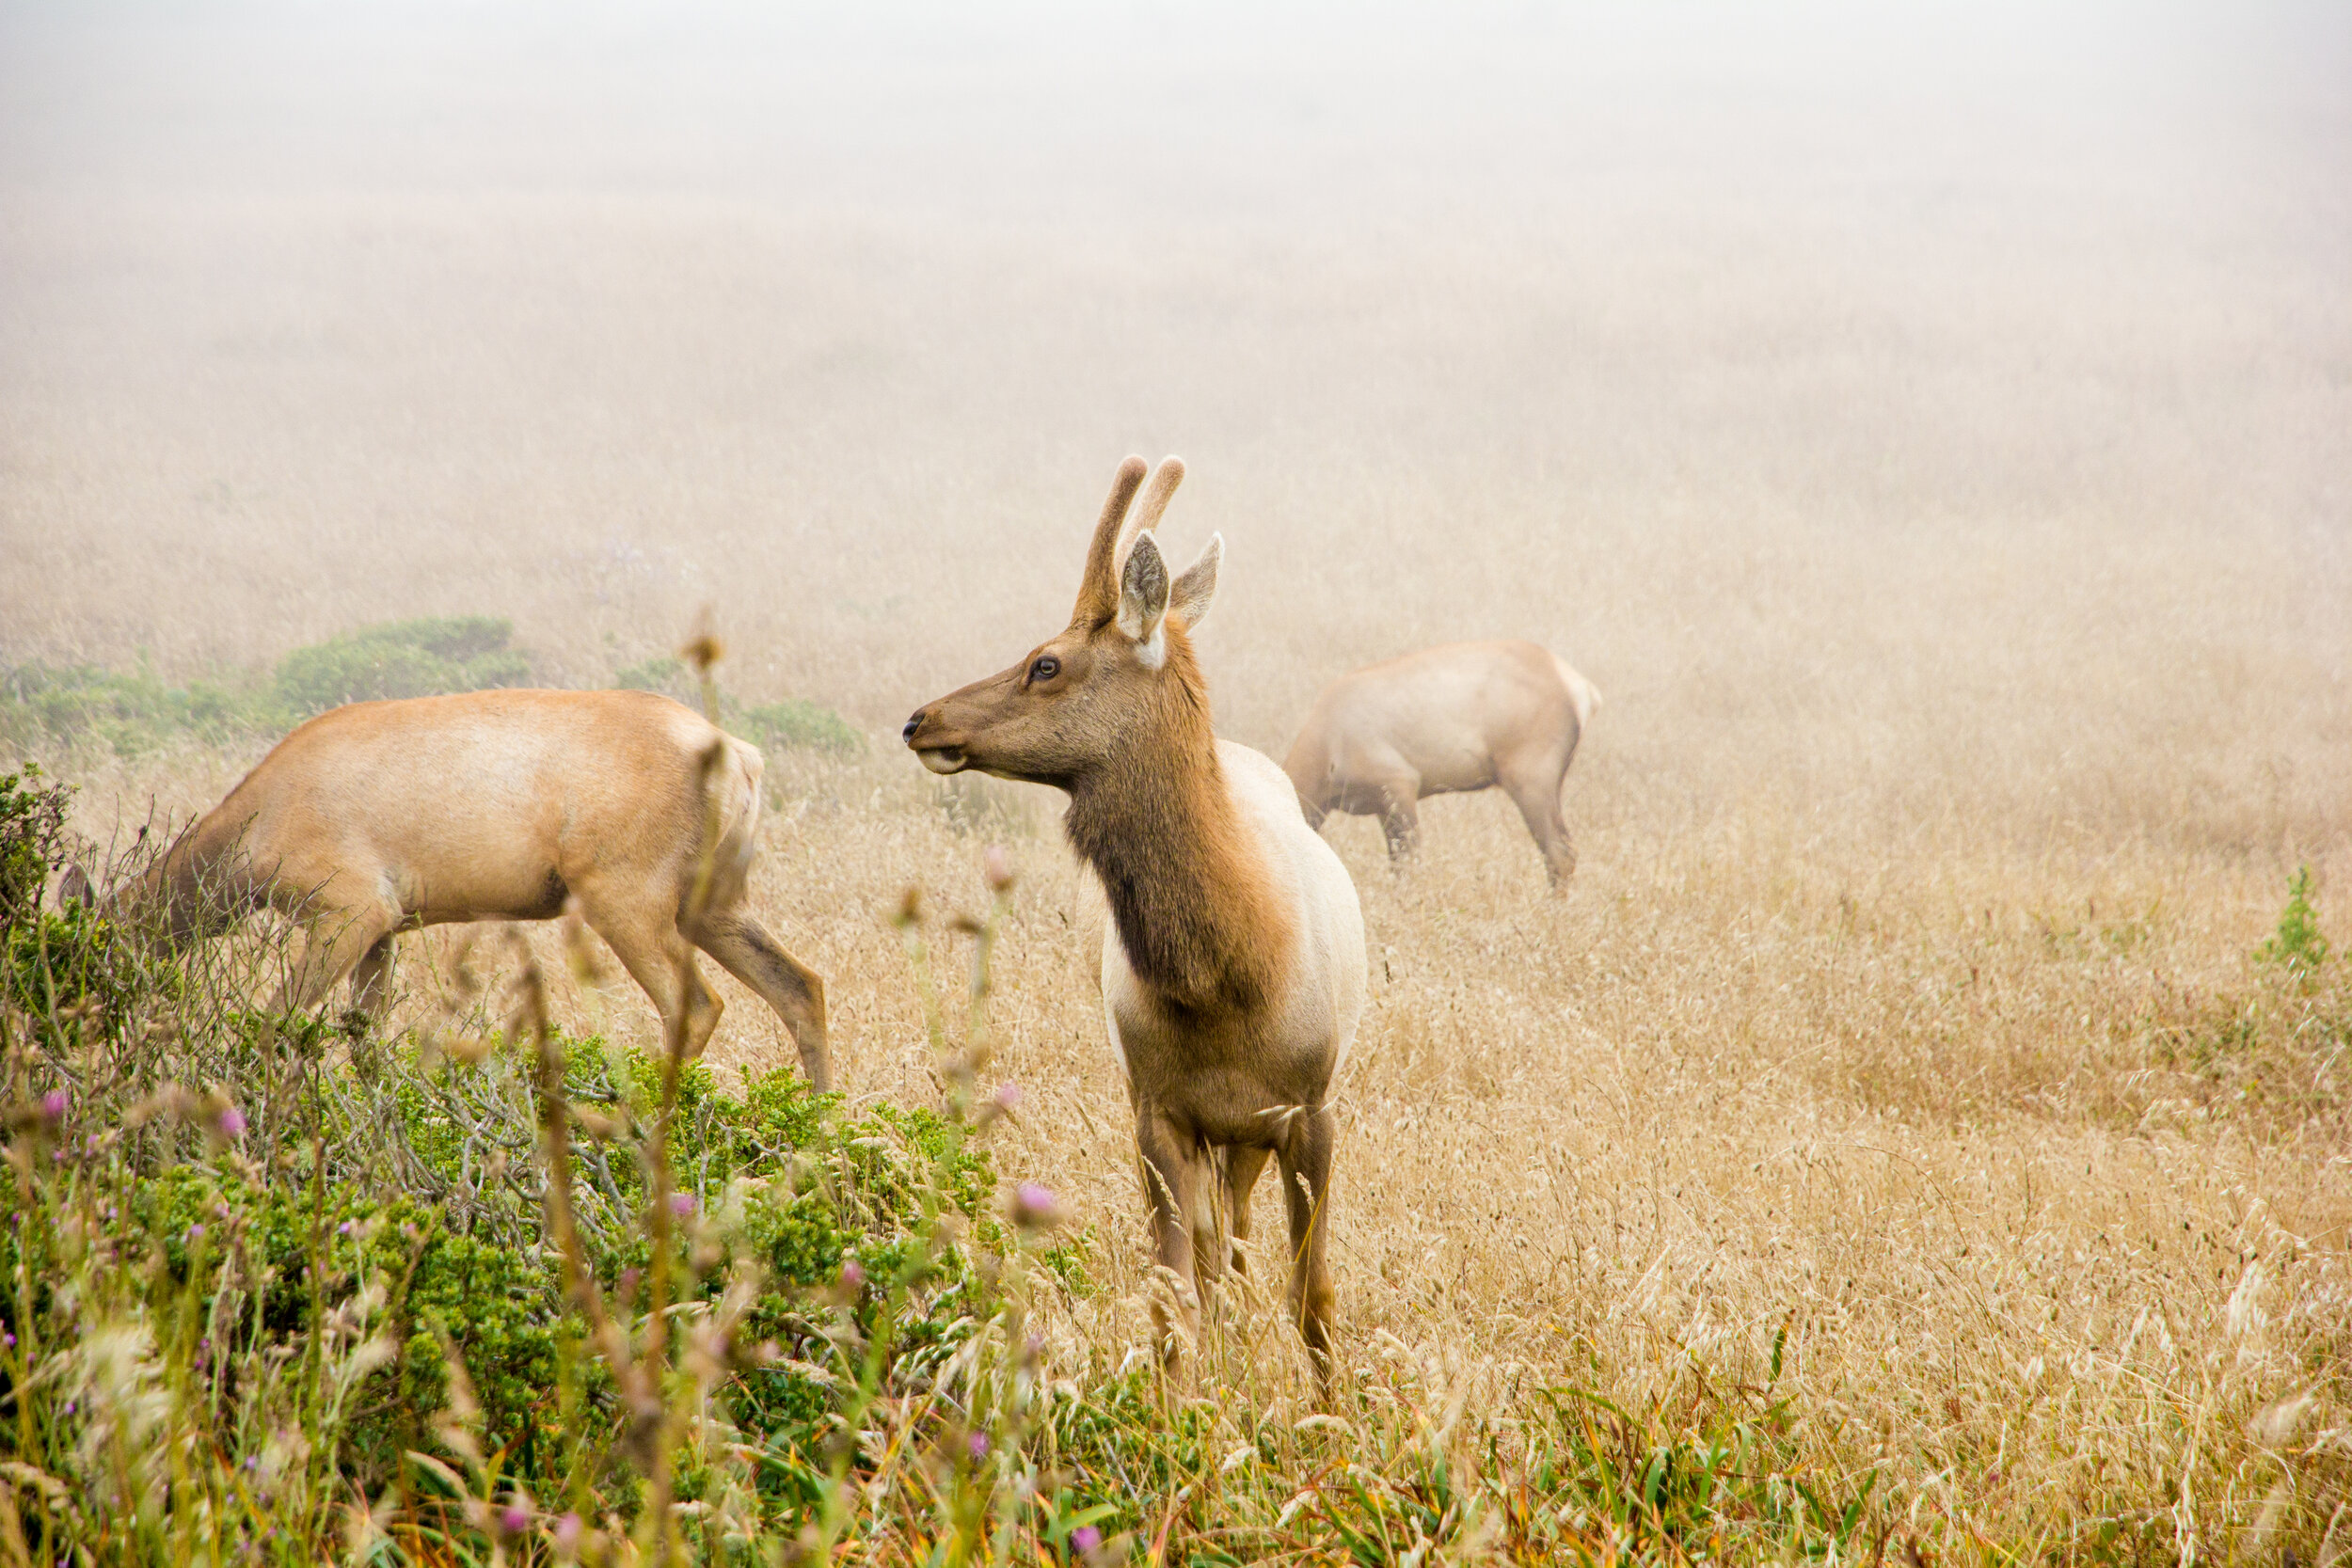 Endemic to California, the tule elk once thrived across the state before their near extinction following the Gold Rush of 1849. To reintroduced the eradicated population of tule elk herds, the Preserve at Tomales Point was established over 40 years ago and has become a unique attraction for visitors and locals alike. // Isabel Baer